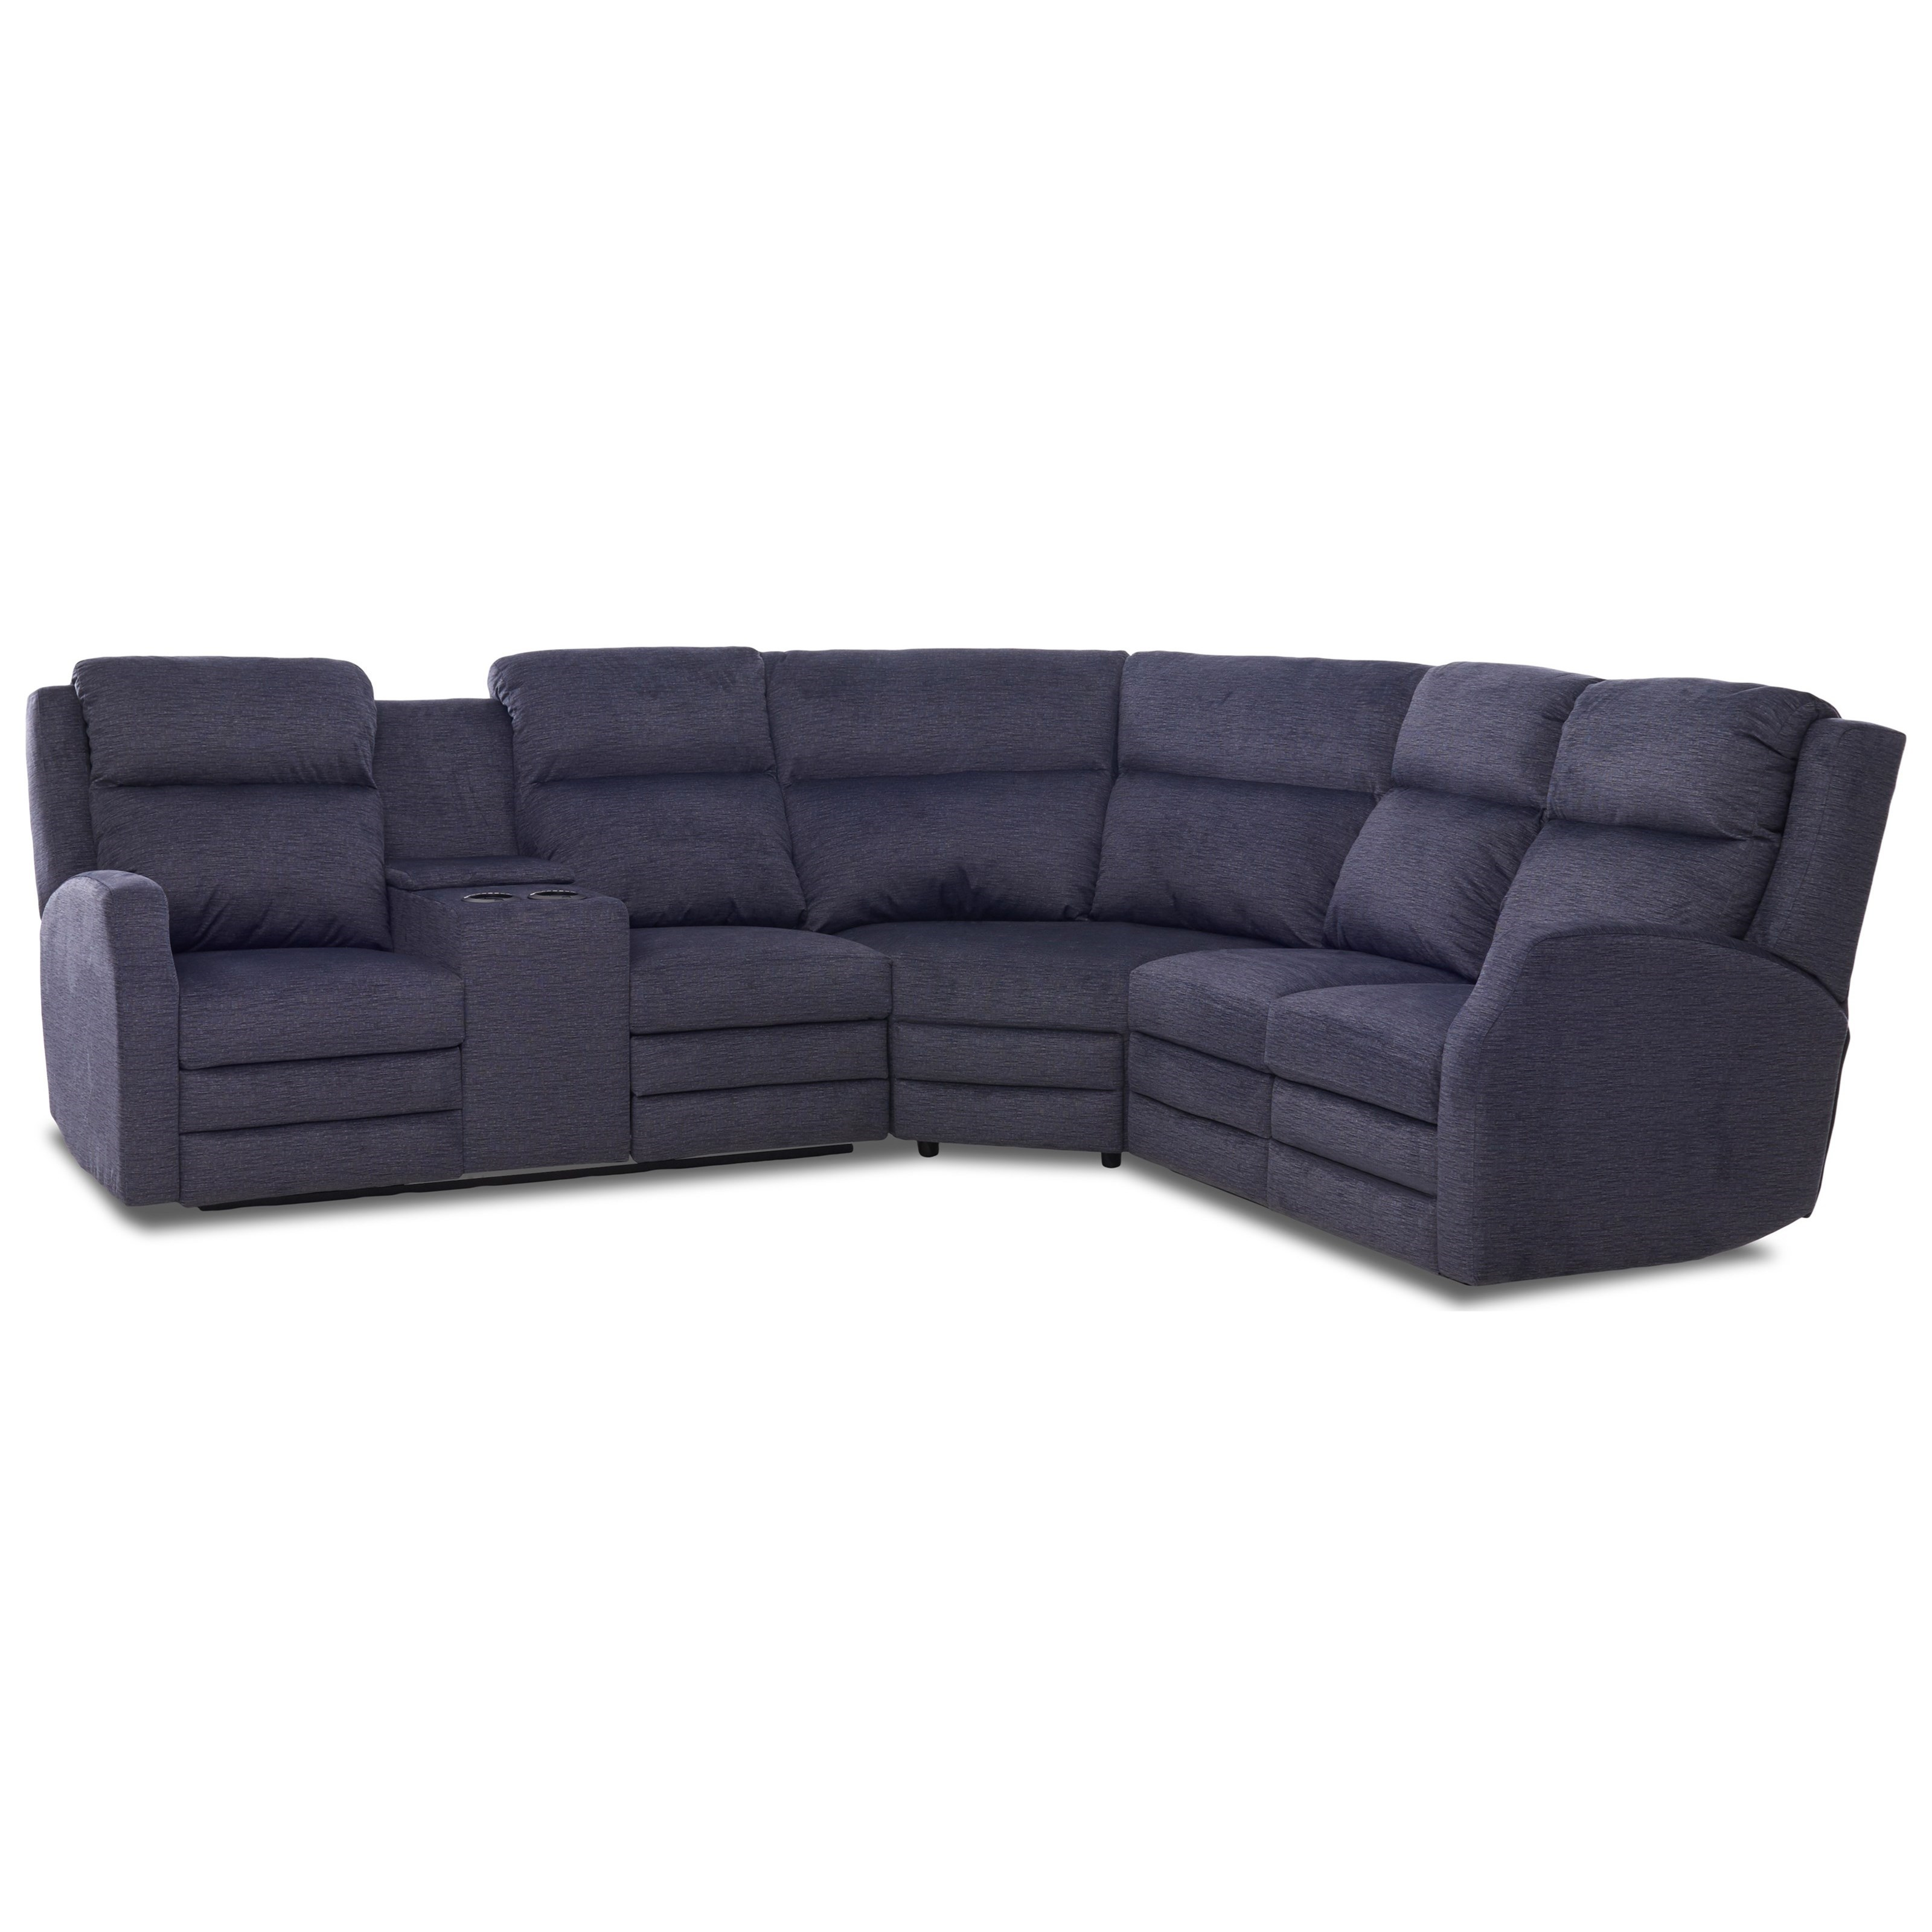 Kamiah 4 Seat Pwr Recl Sect Sofa w/ Pwr Head/Lumb by Klaussner at Johnny Janosik